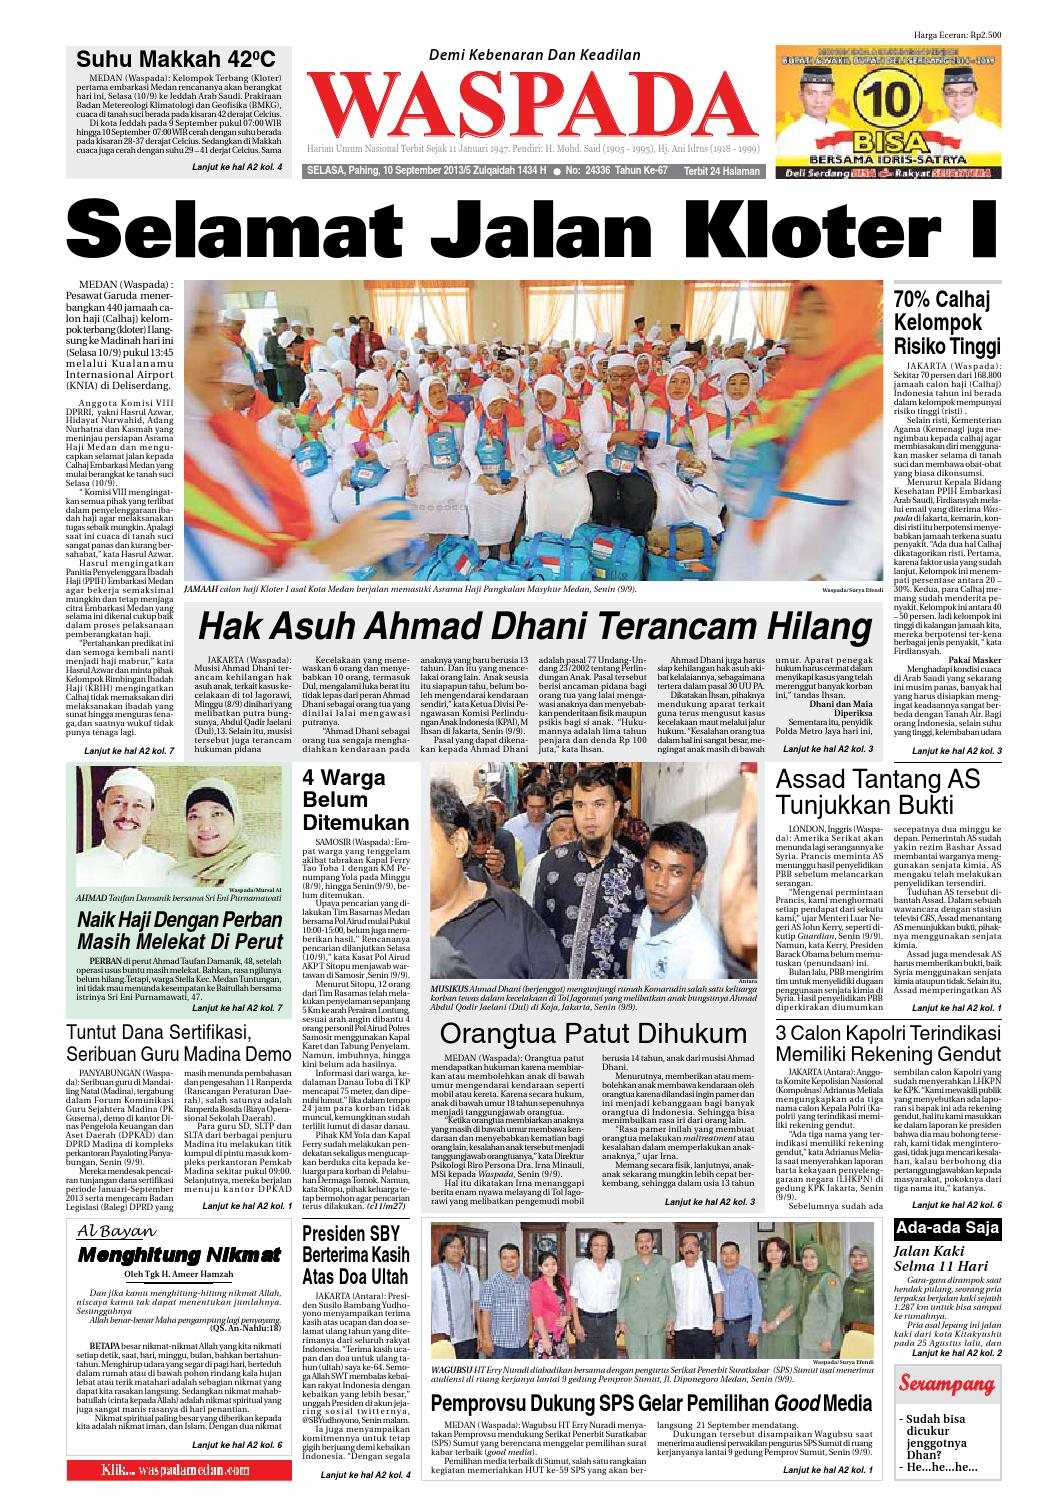 Waspada Selasa 10 September 2013 By Harian Waspada Issuu